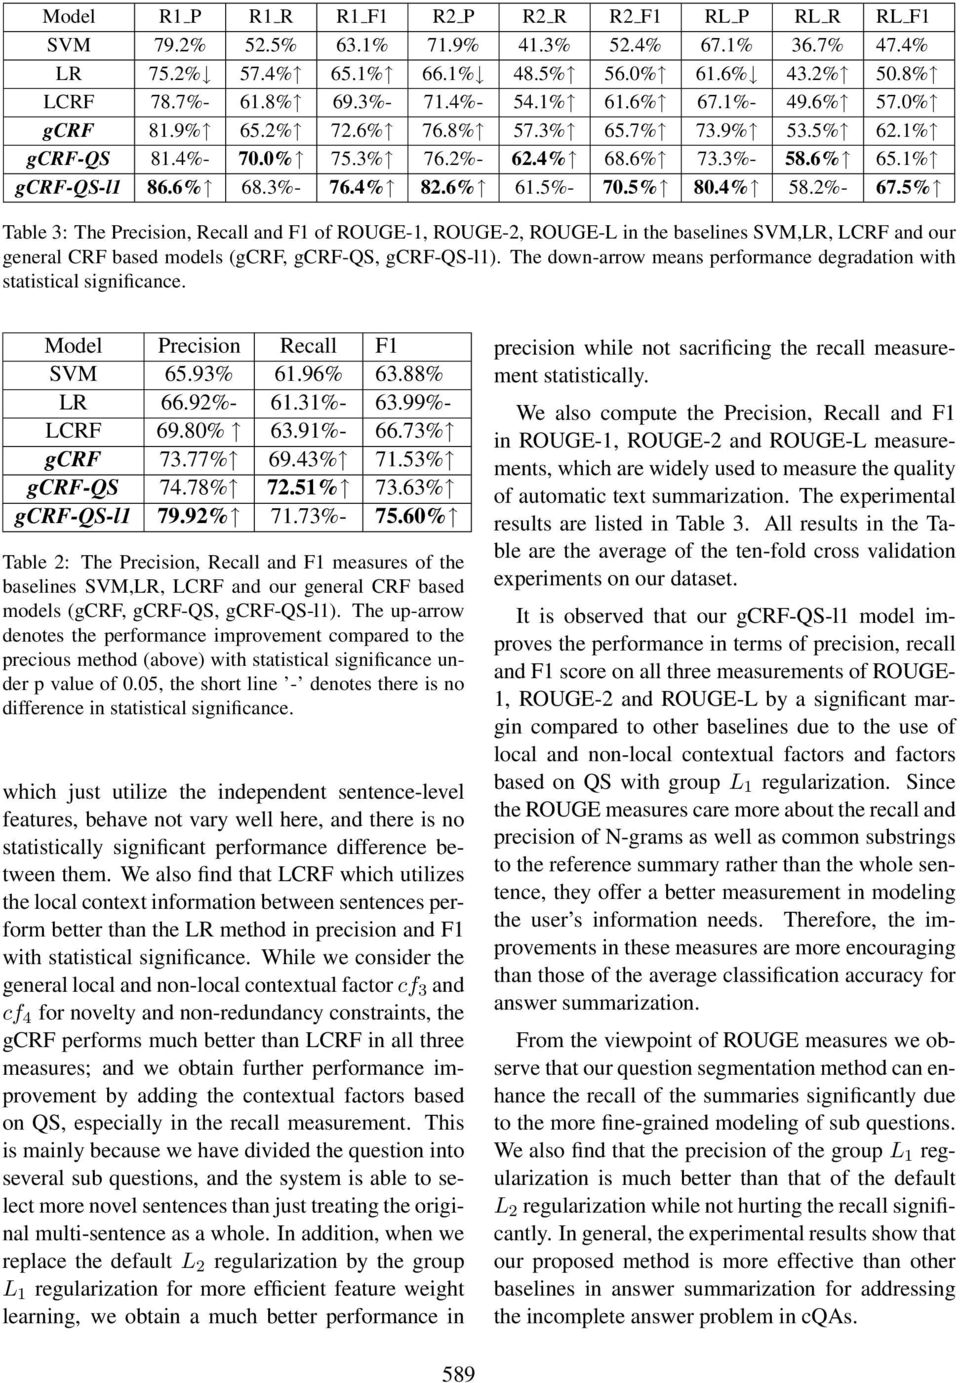 5%- 70.5% 80.4% 58.2%- 67.5% Table 3: The Precision, Recall and F1 of ROUGE-1, ROUGE-2, ROUGE-L in the baselines SVM,LR, LCRF and our general CRF based models (gcrf, gcrf-qs, gcrf-qs-l1).